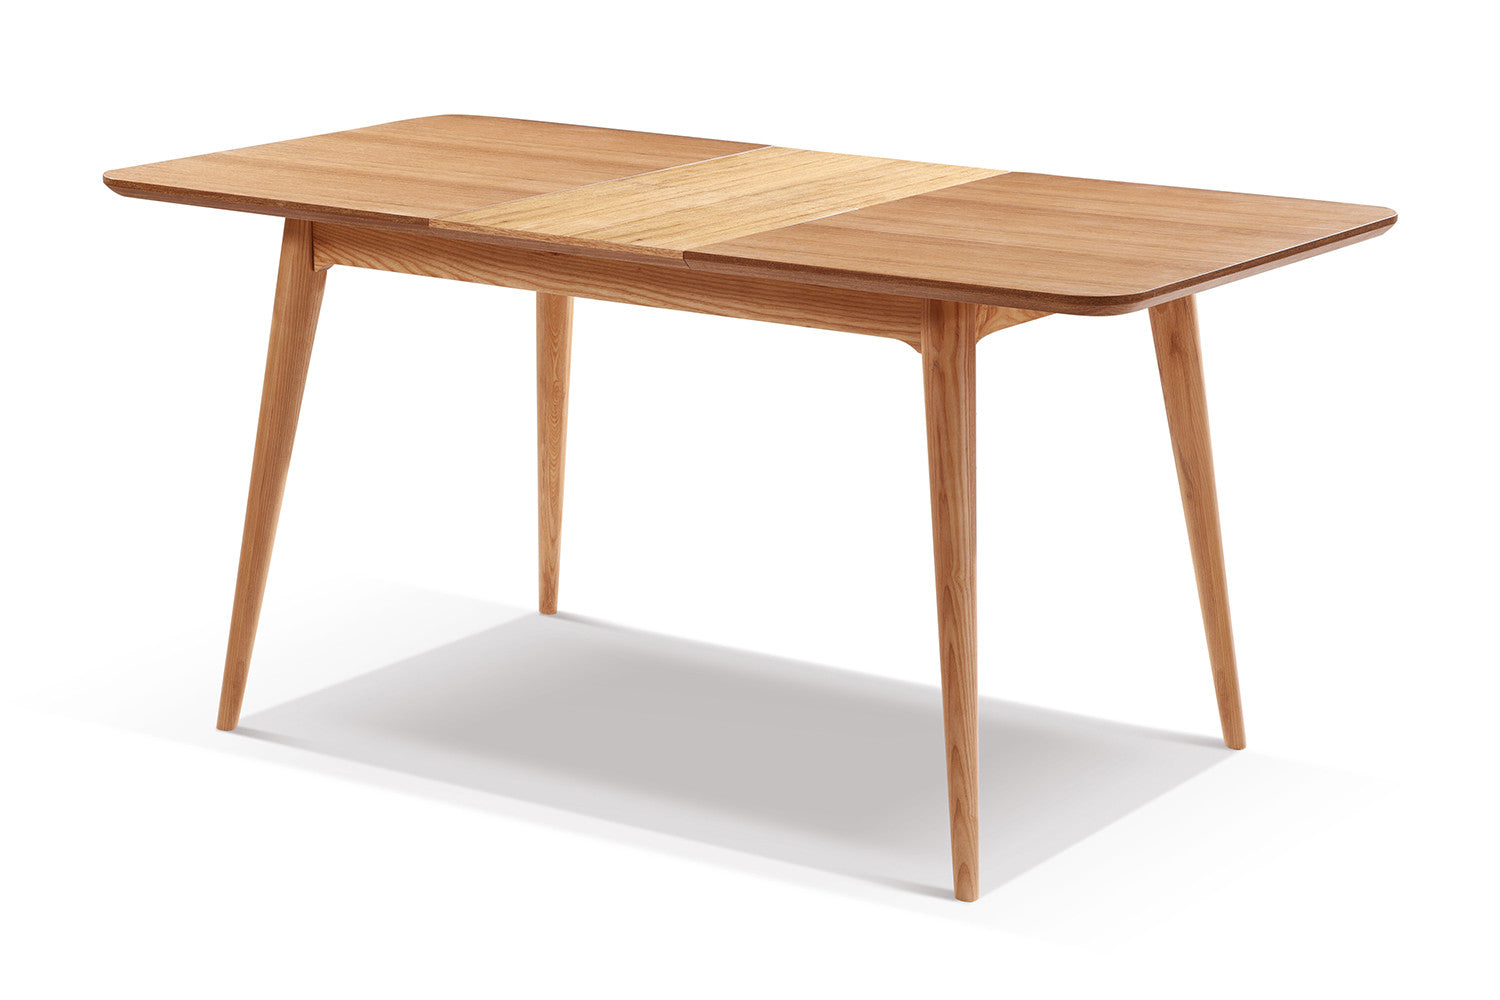 Table de salle manger extensible en bois adda dewarens for Table salle a manger extensible fly